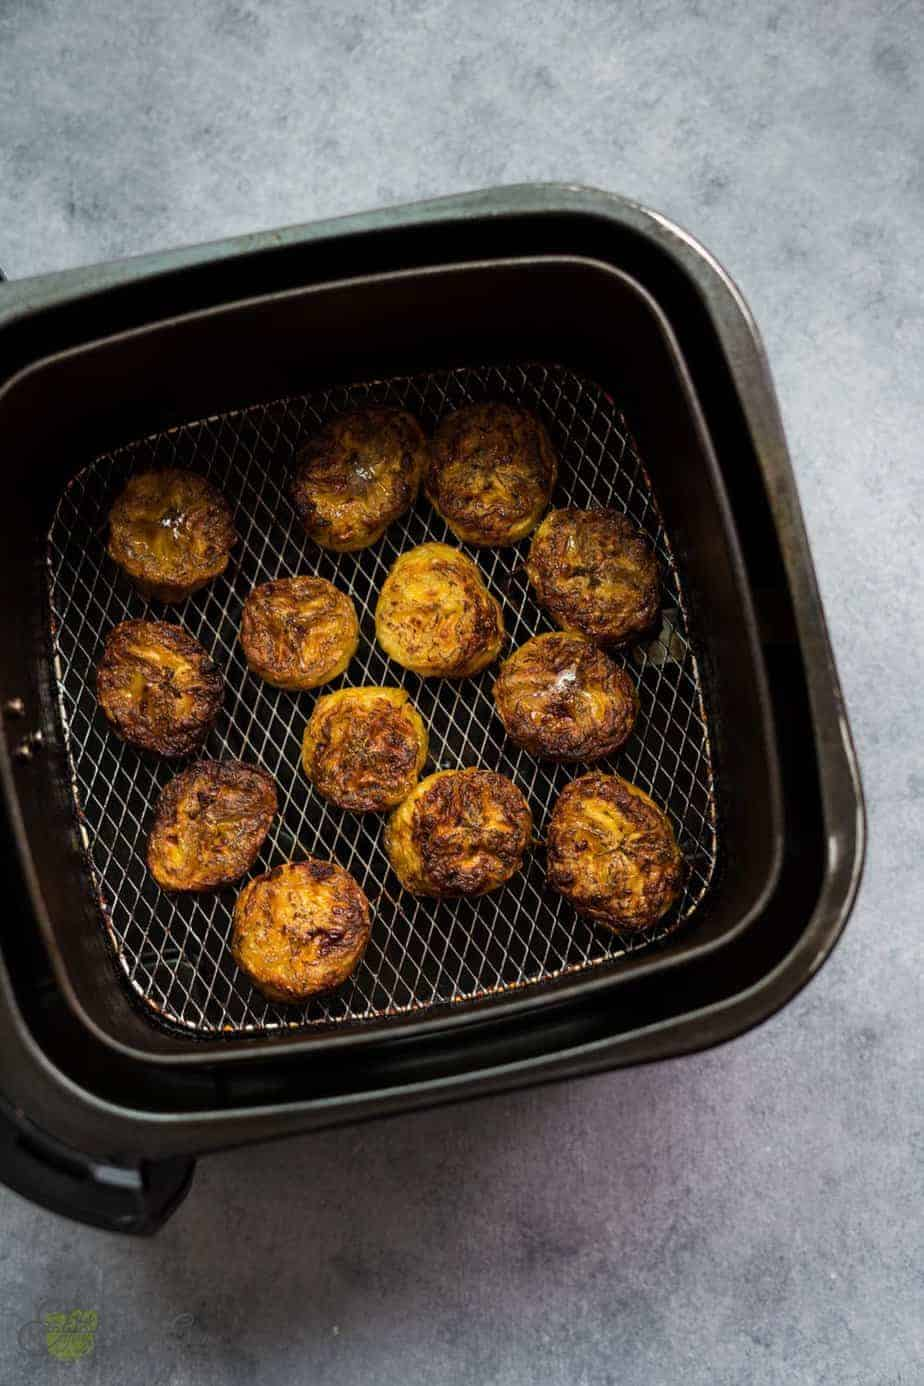 freshly fried plantains air fryer in the basket basket. with a golden brown color and crispy texture in the outside and soft and sweet inside.